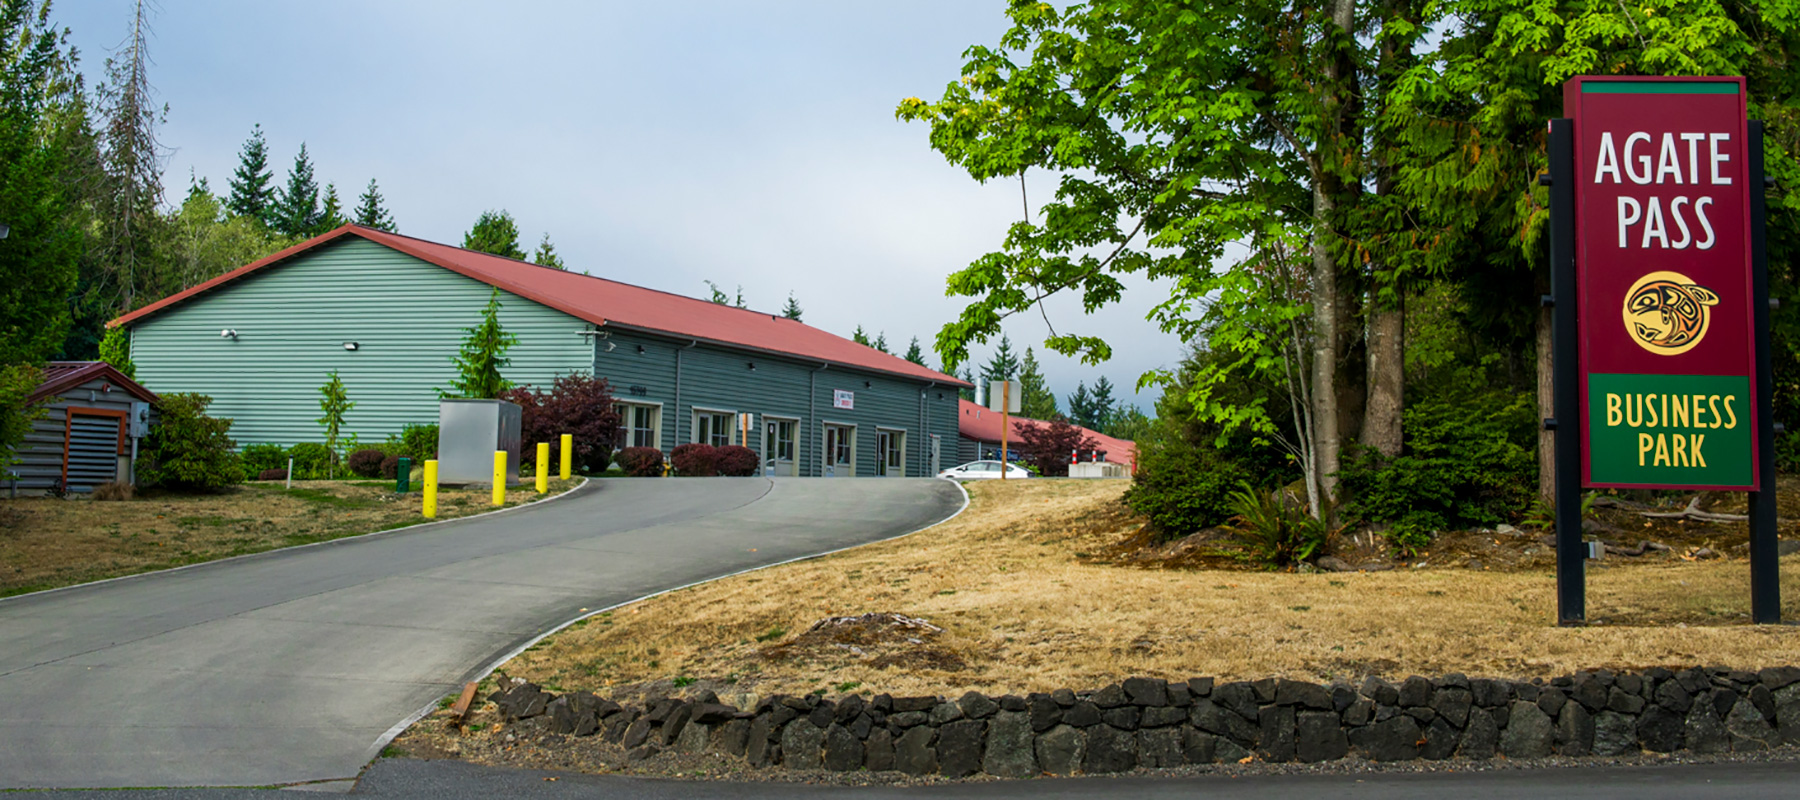 Agate Pass Business Park